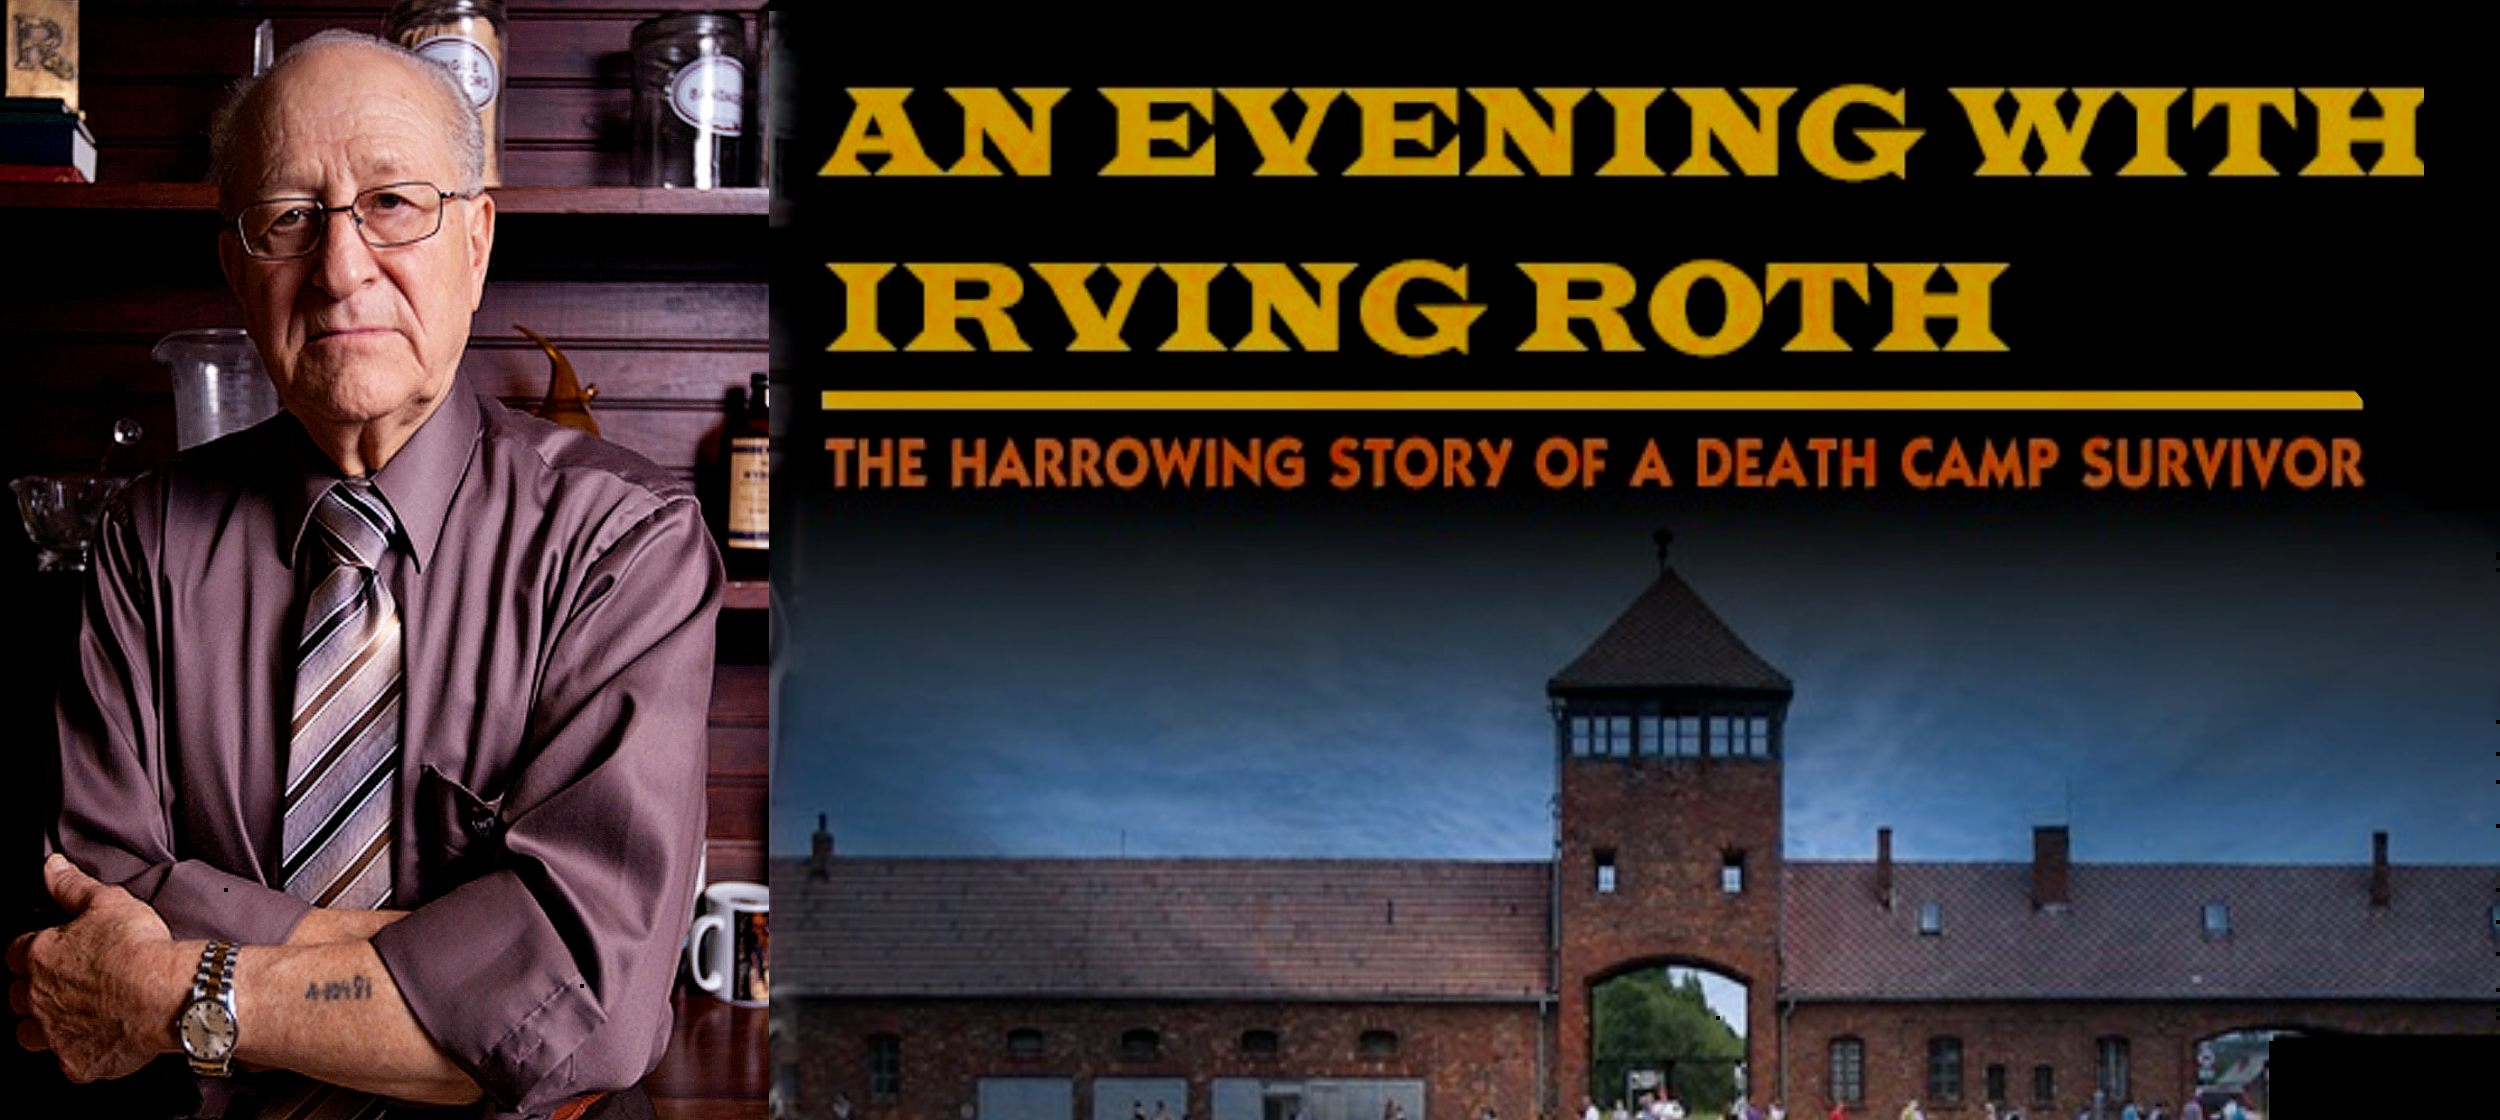 Testimony of a Death Camp Survivor: An Evening with Irving Roth